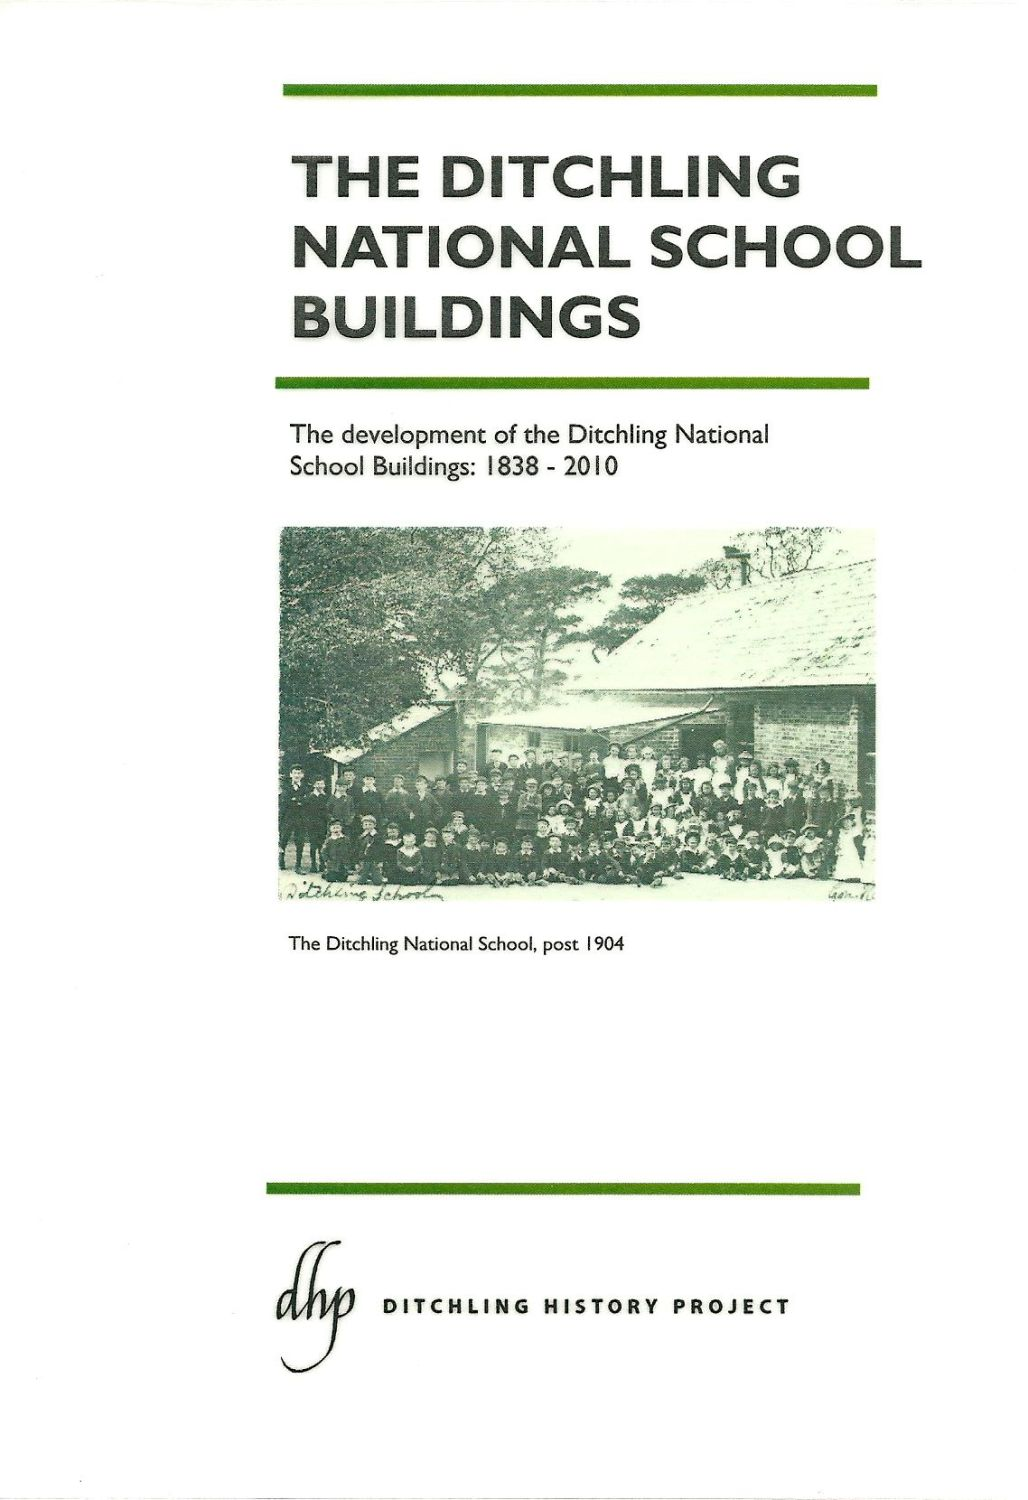 The Ditchling National School Buildings